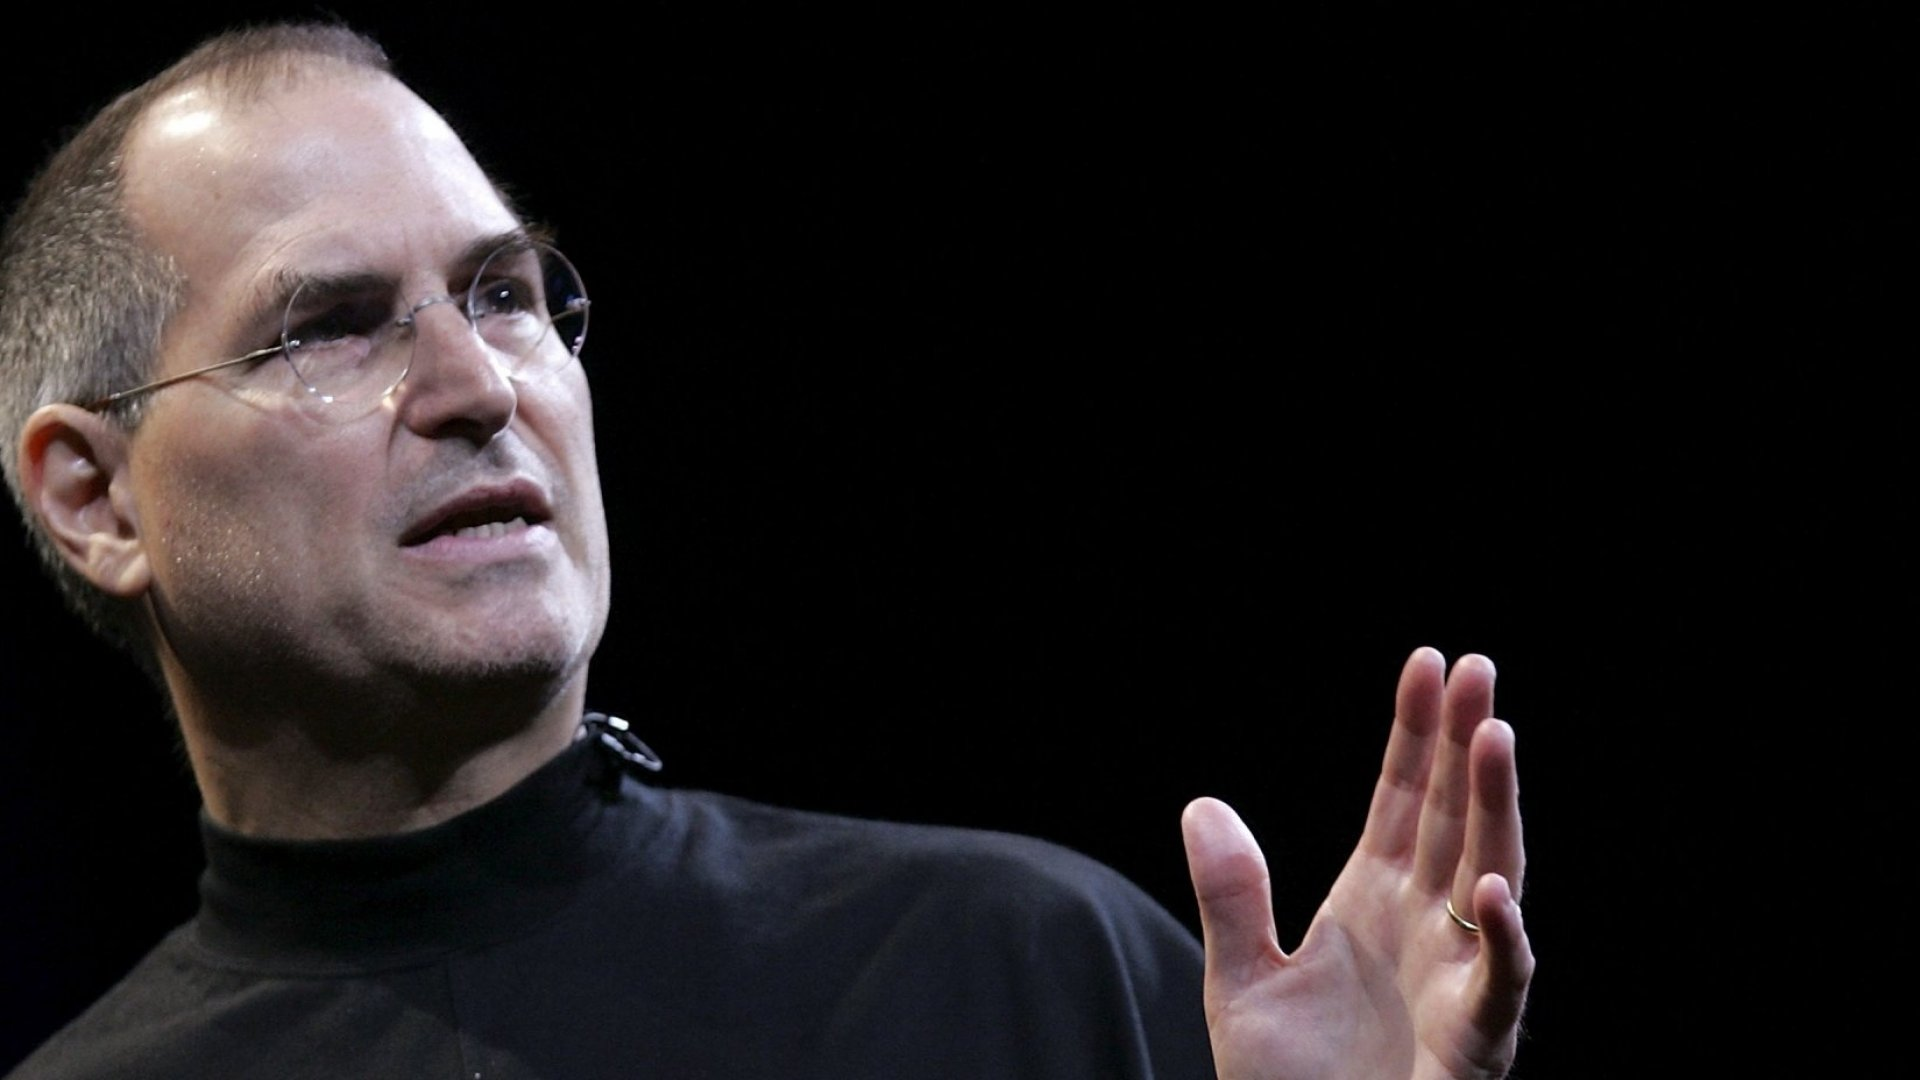 The 1 Brutal Question Every Leader Should Be Able to Answer, According to Steve Jobs